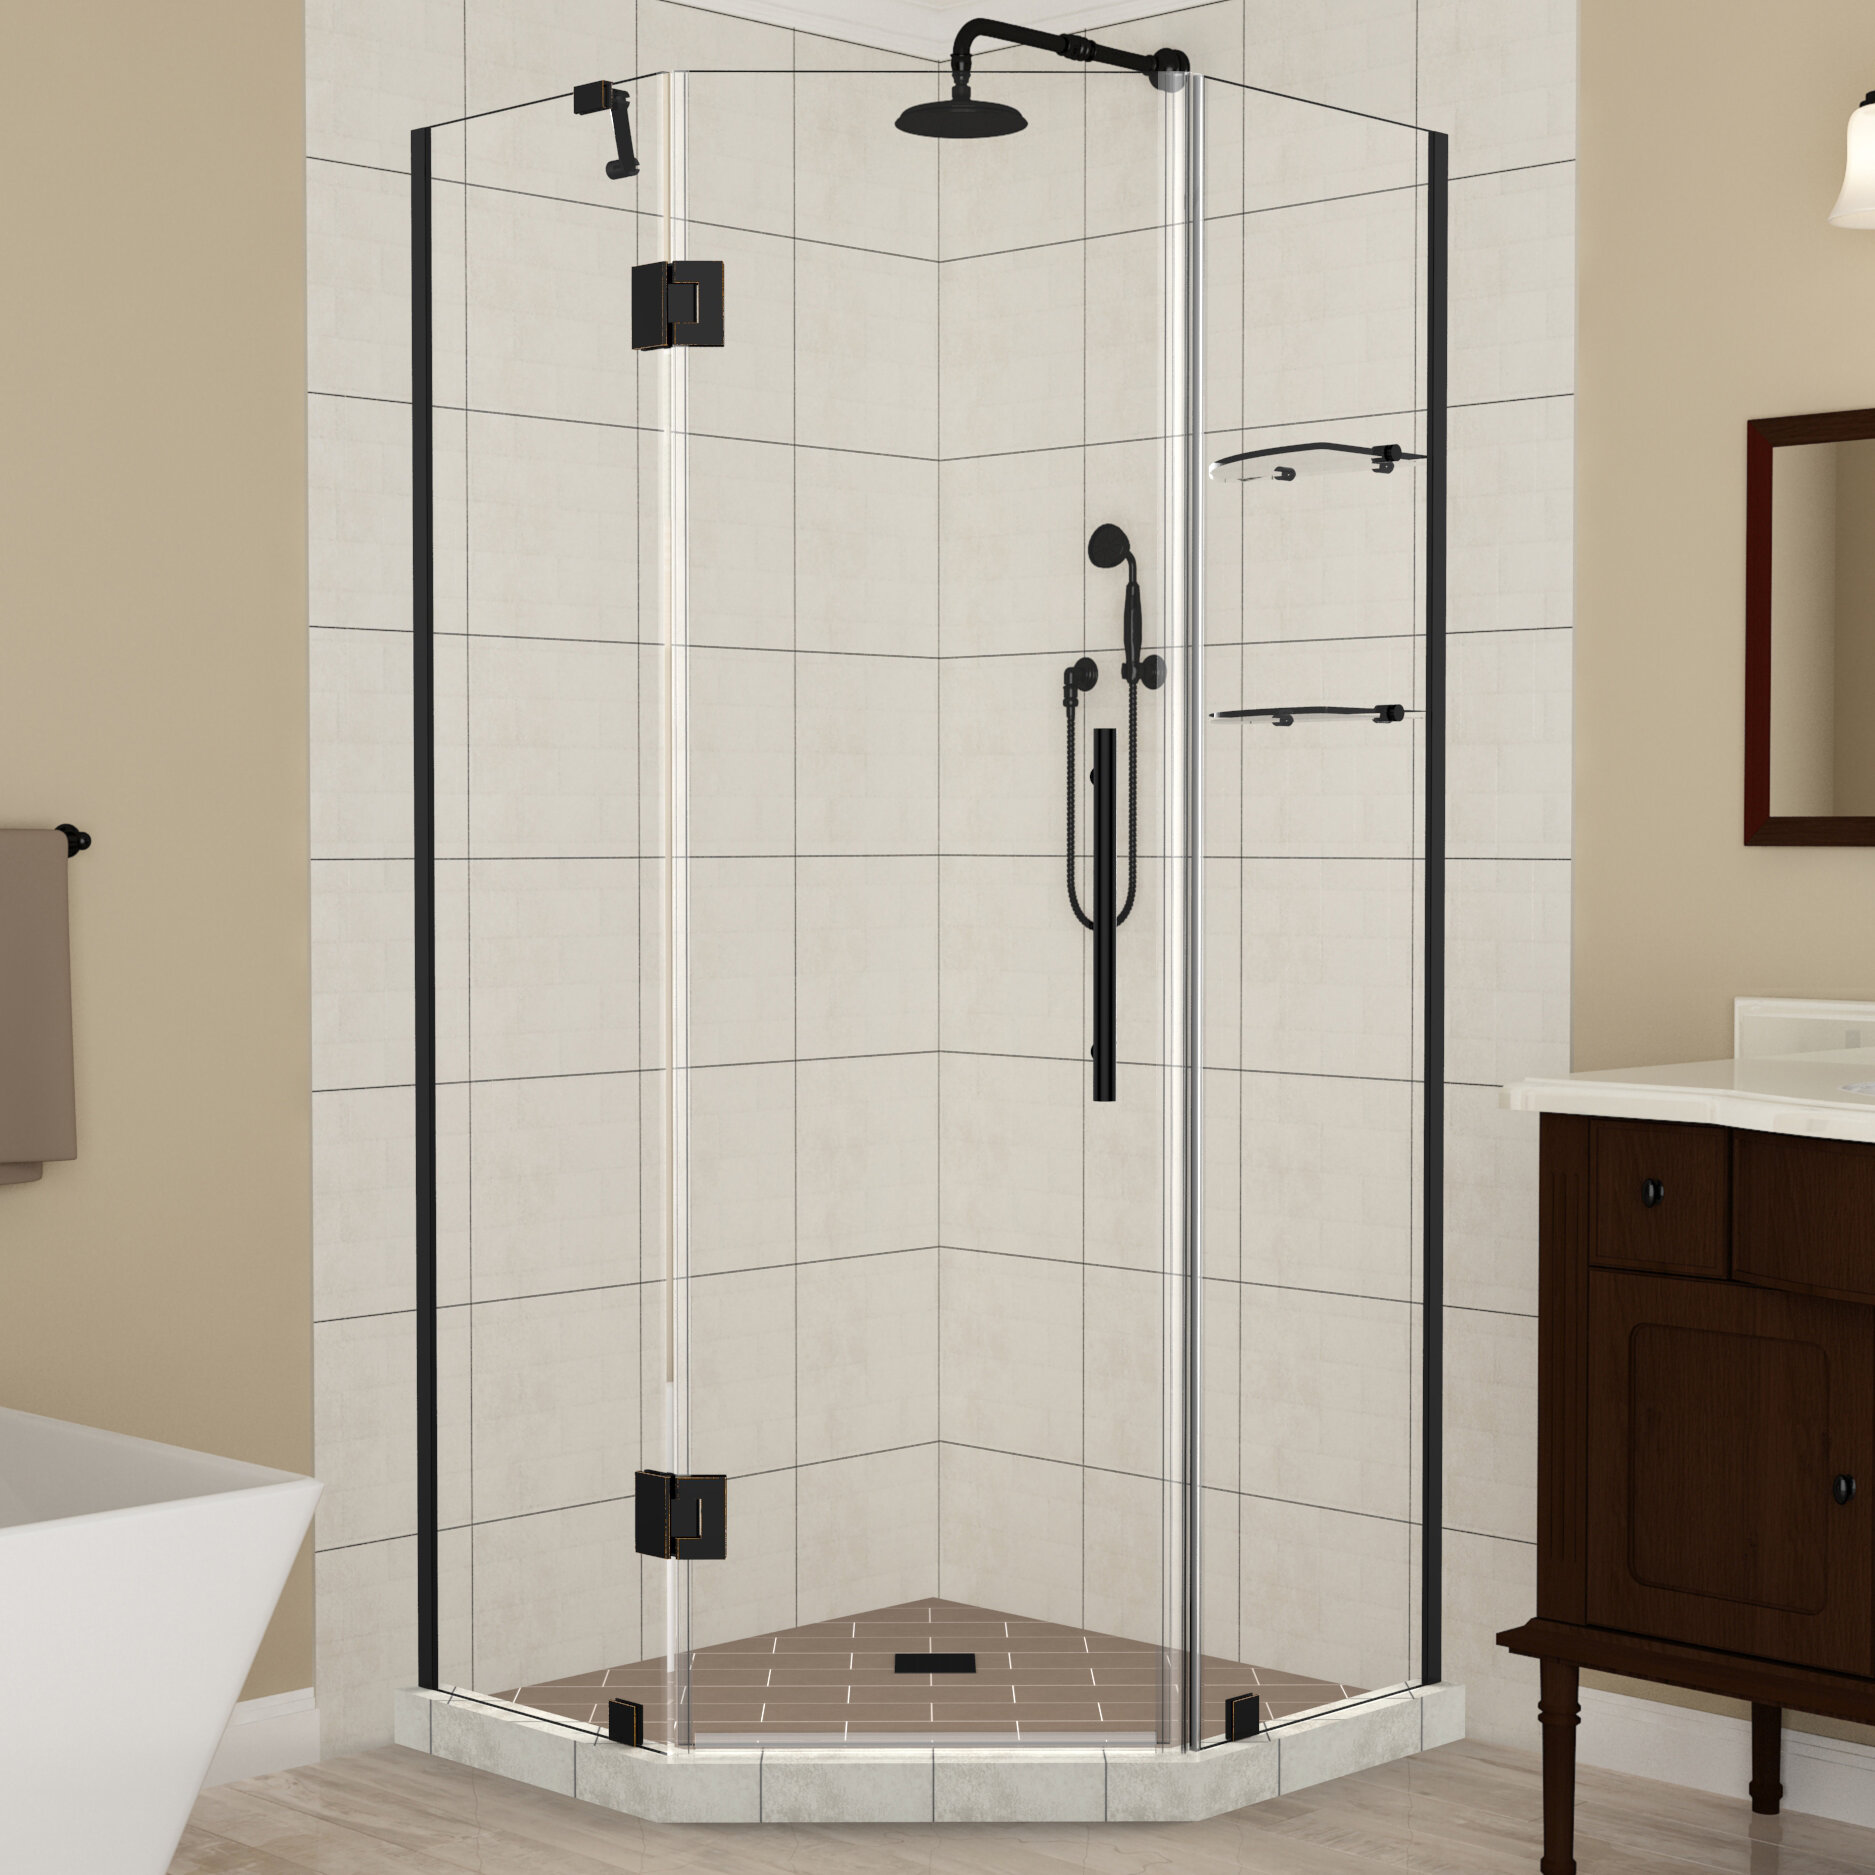 Merrick Gs Frameless 42 X 72 Neo Angle Hinged Shower Enclosure